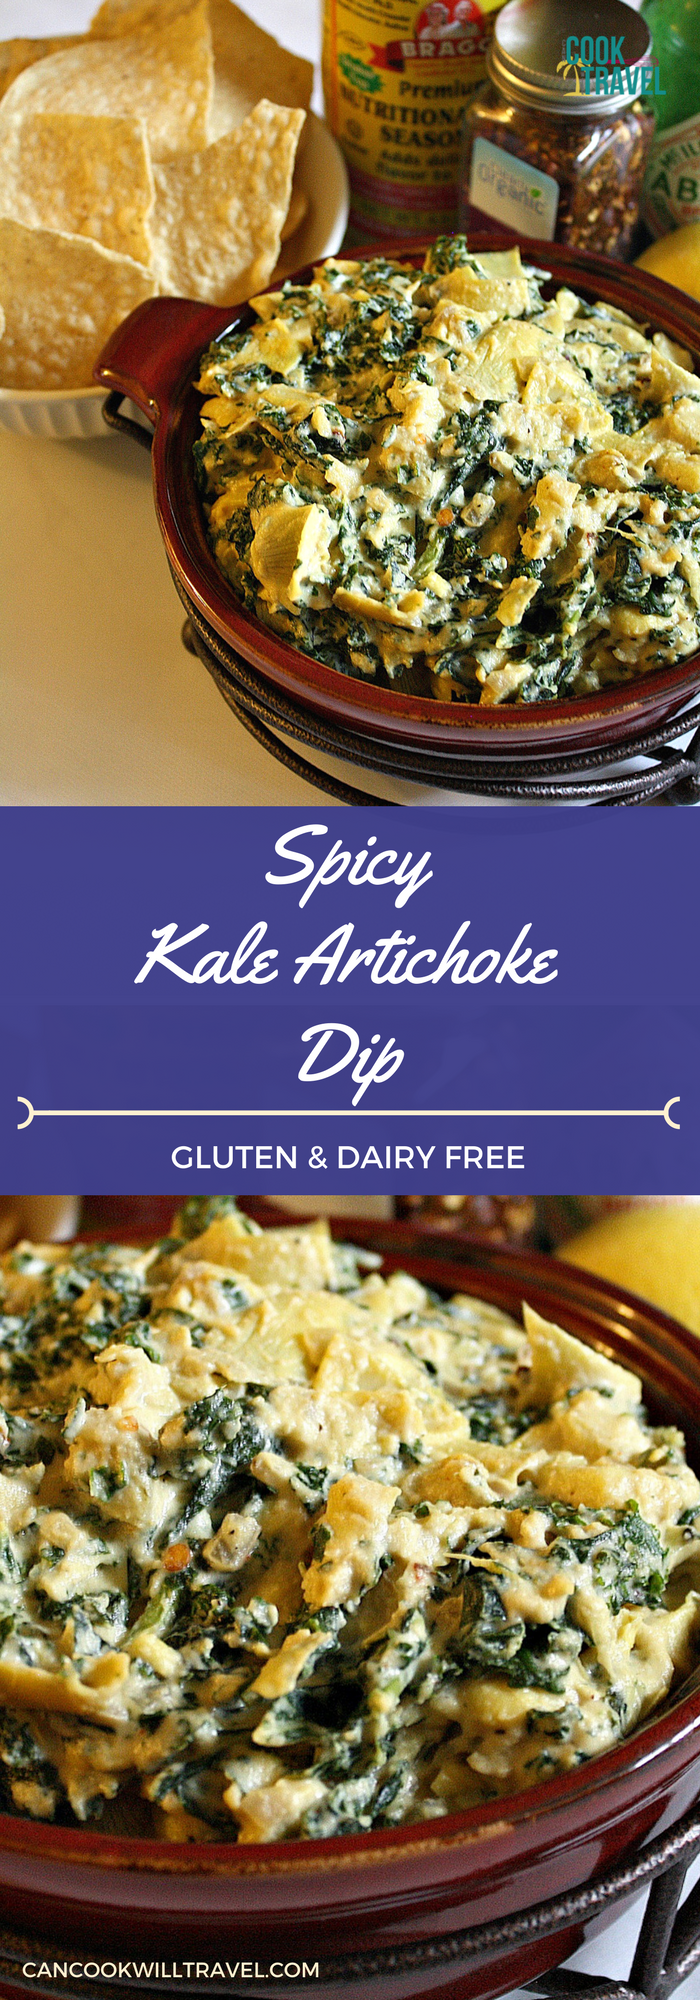 Spicy Kale Artichoke Dip_Collage1